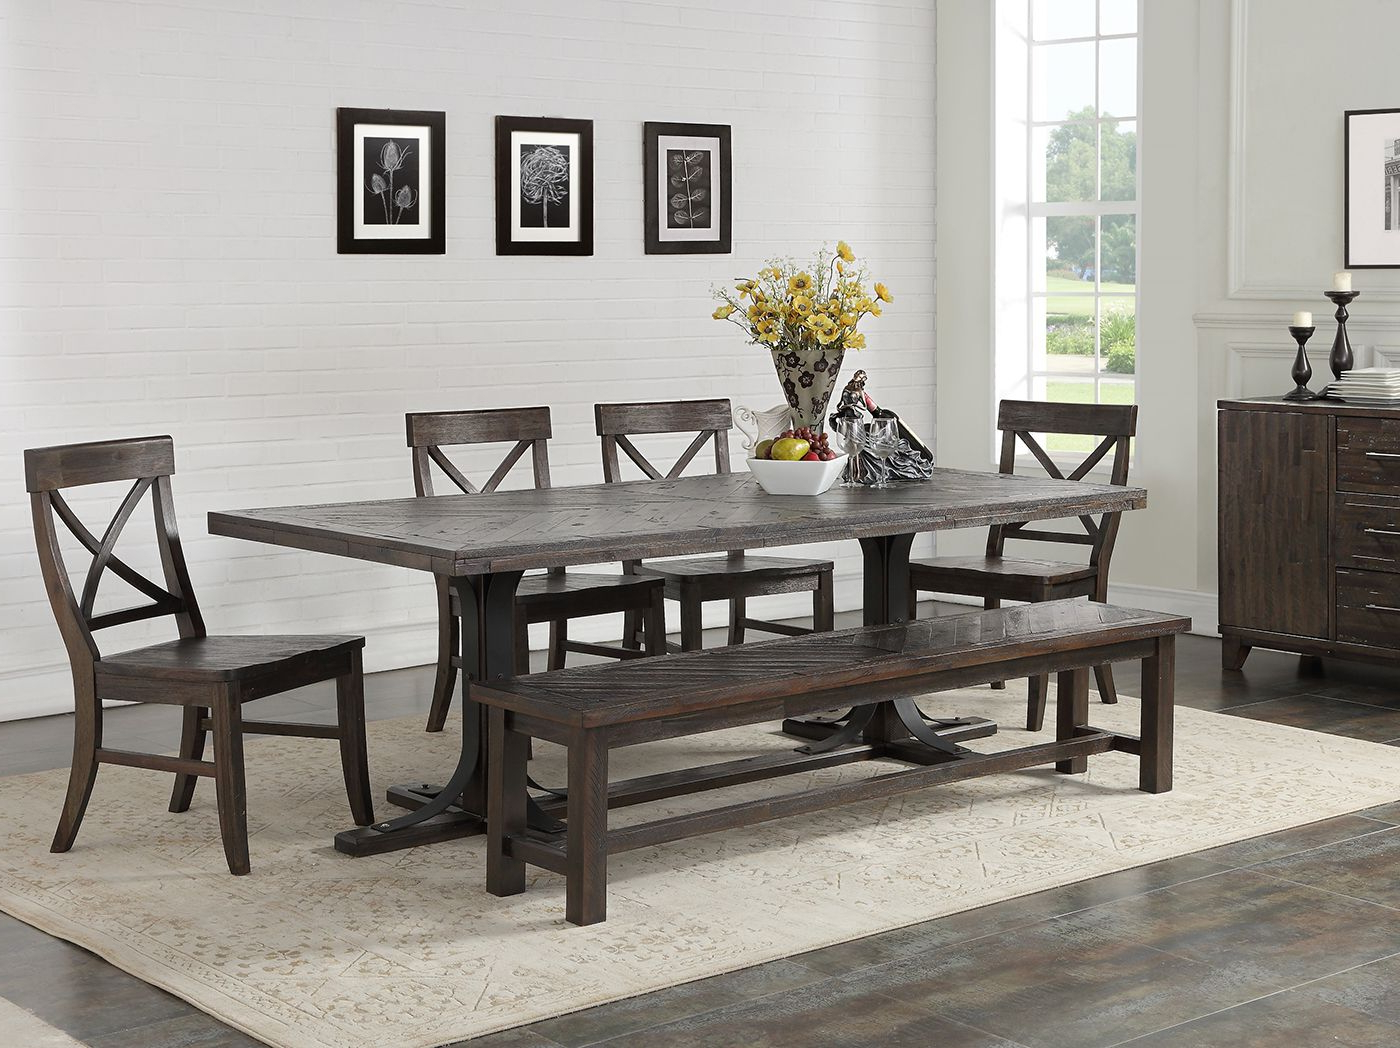 Aria 5 Piece Dining Sets Throughout Well Known Direct Designs® Aria 5 Pc (View 4 of 20)